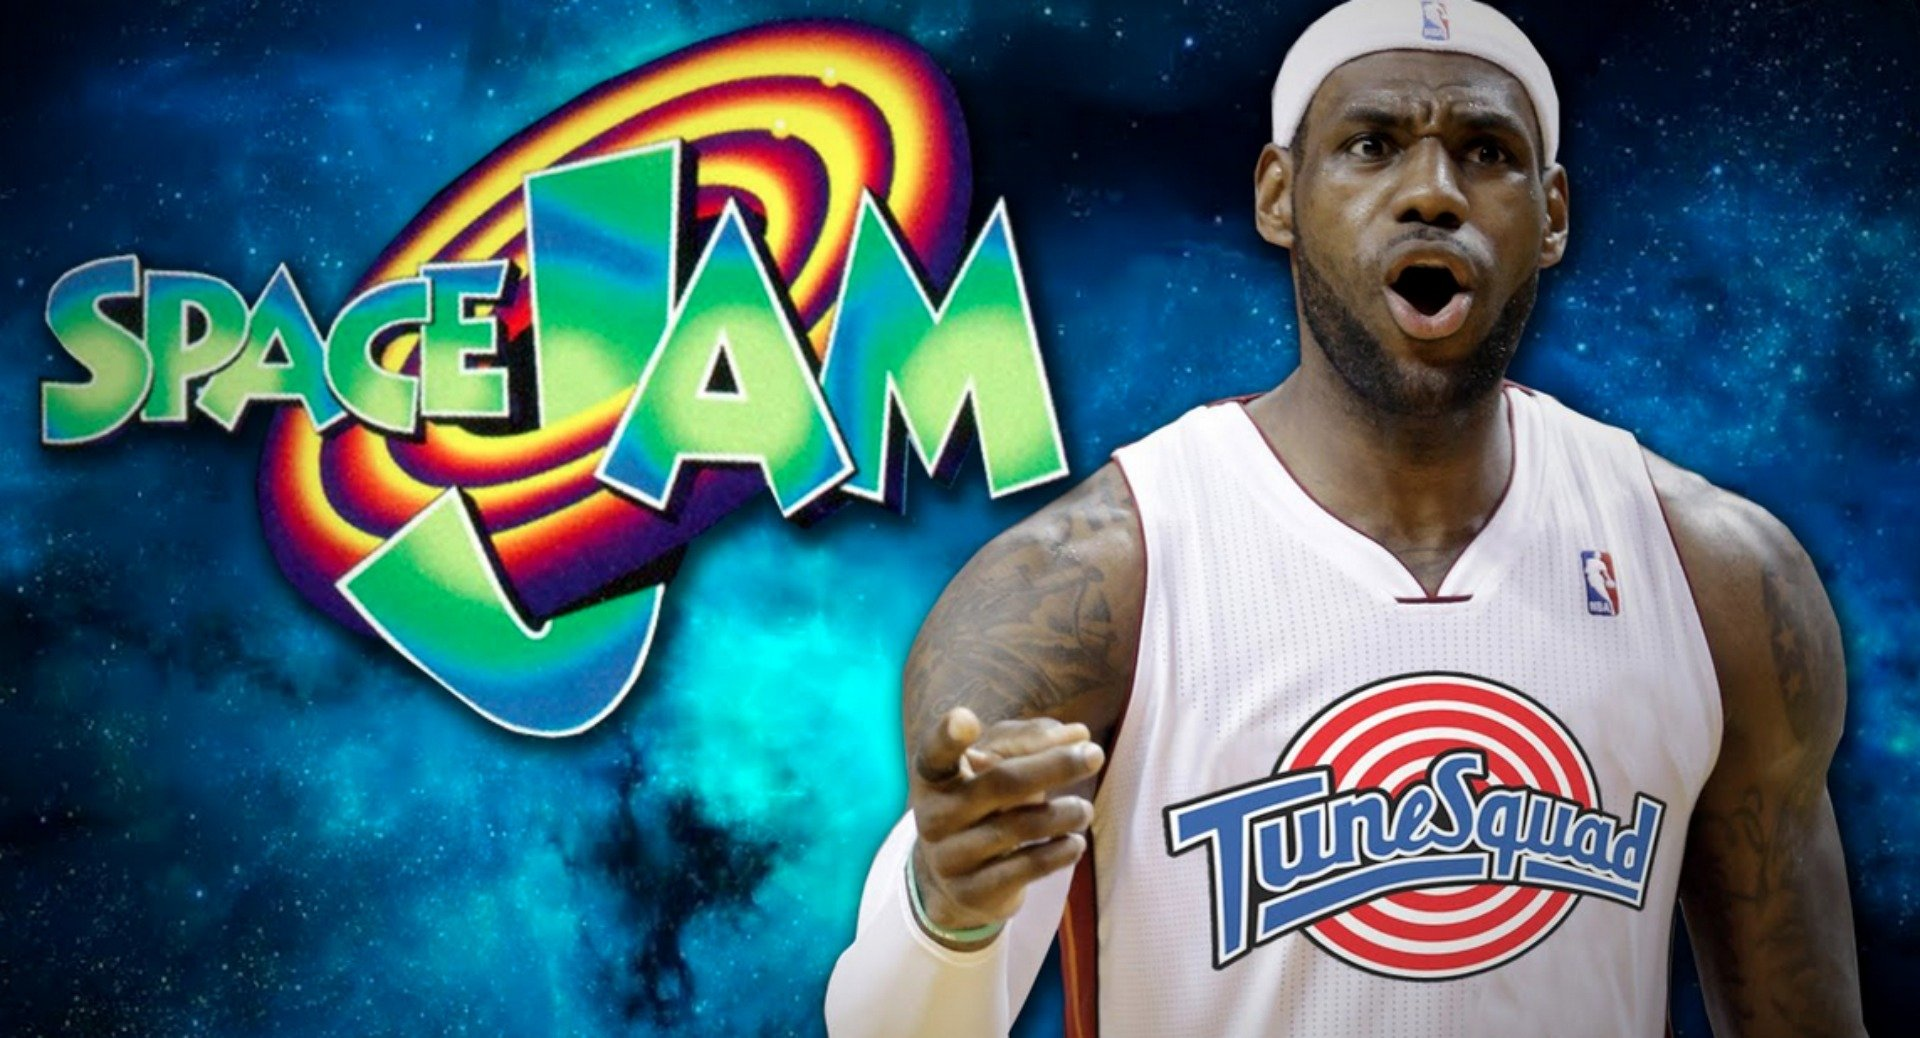 Space Jam 2 is an upcoming sequel to 1996s Space Jam The film will be directed by Fast amp Furious director Justin Lin Contentsshow Plot To Be Announced Characters